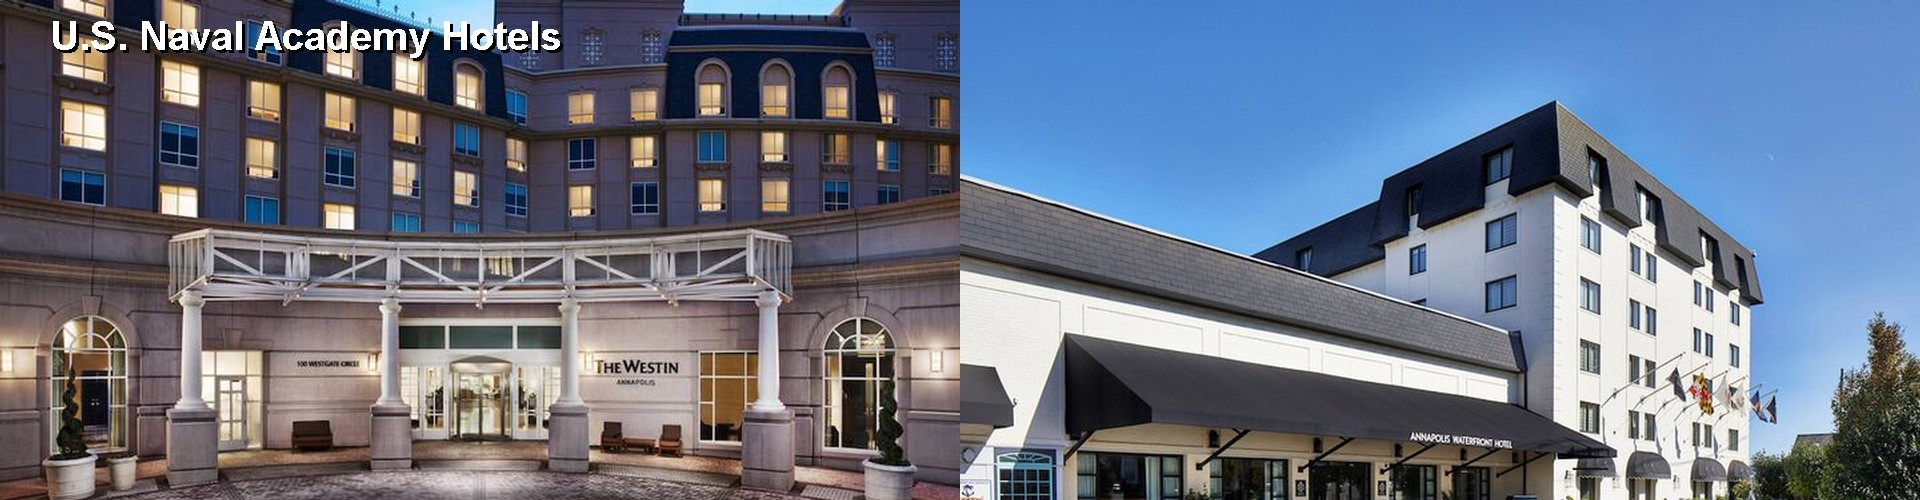 5 Best Hotels Near U S Naval Academy